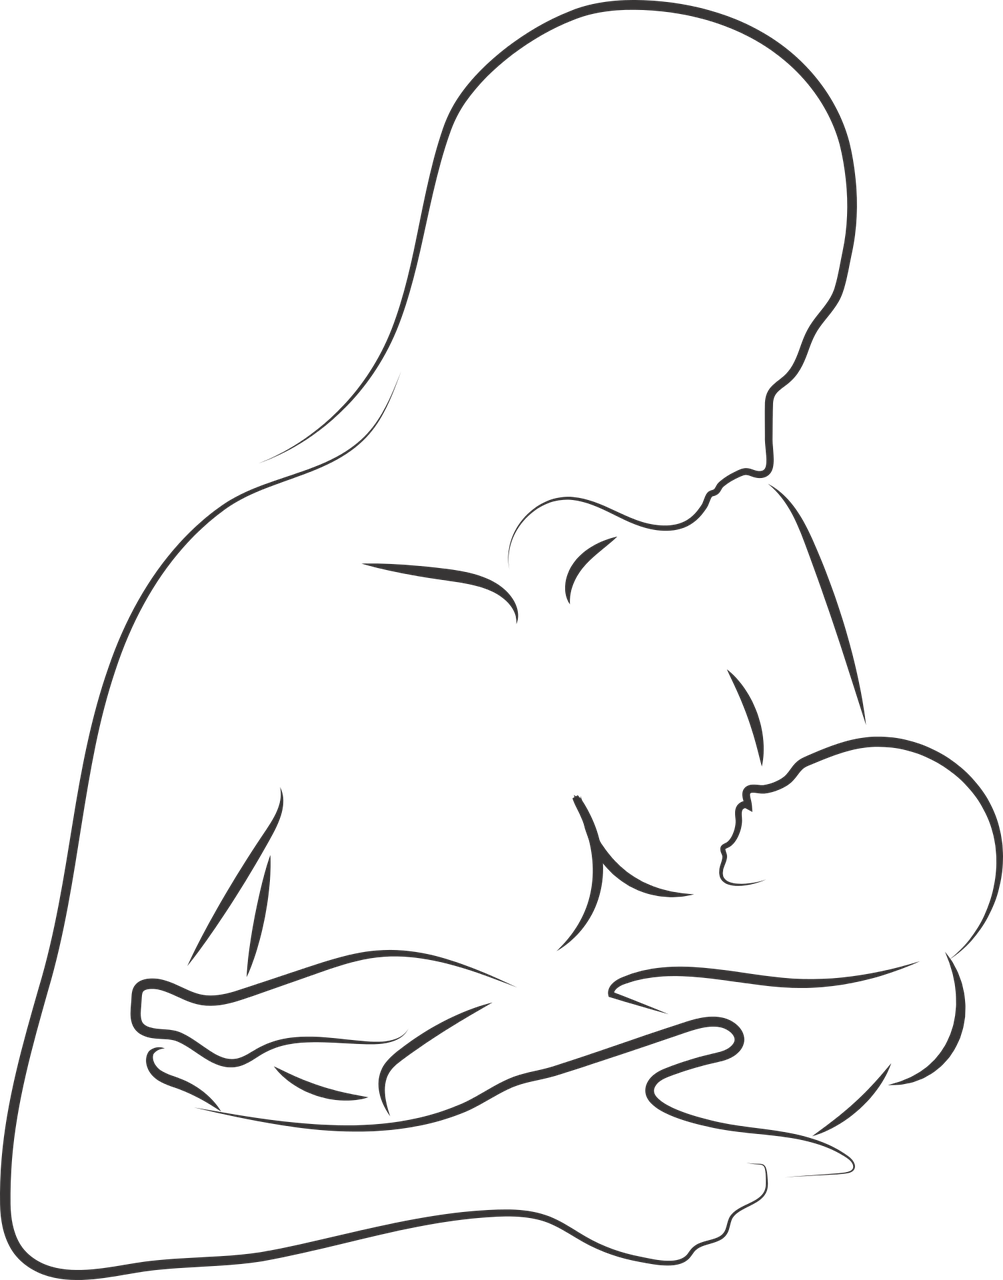 Breastfeeding Mother And Child - Free vector graphic on Pixabay